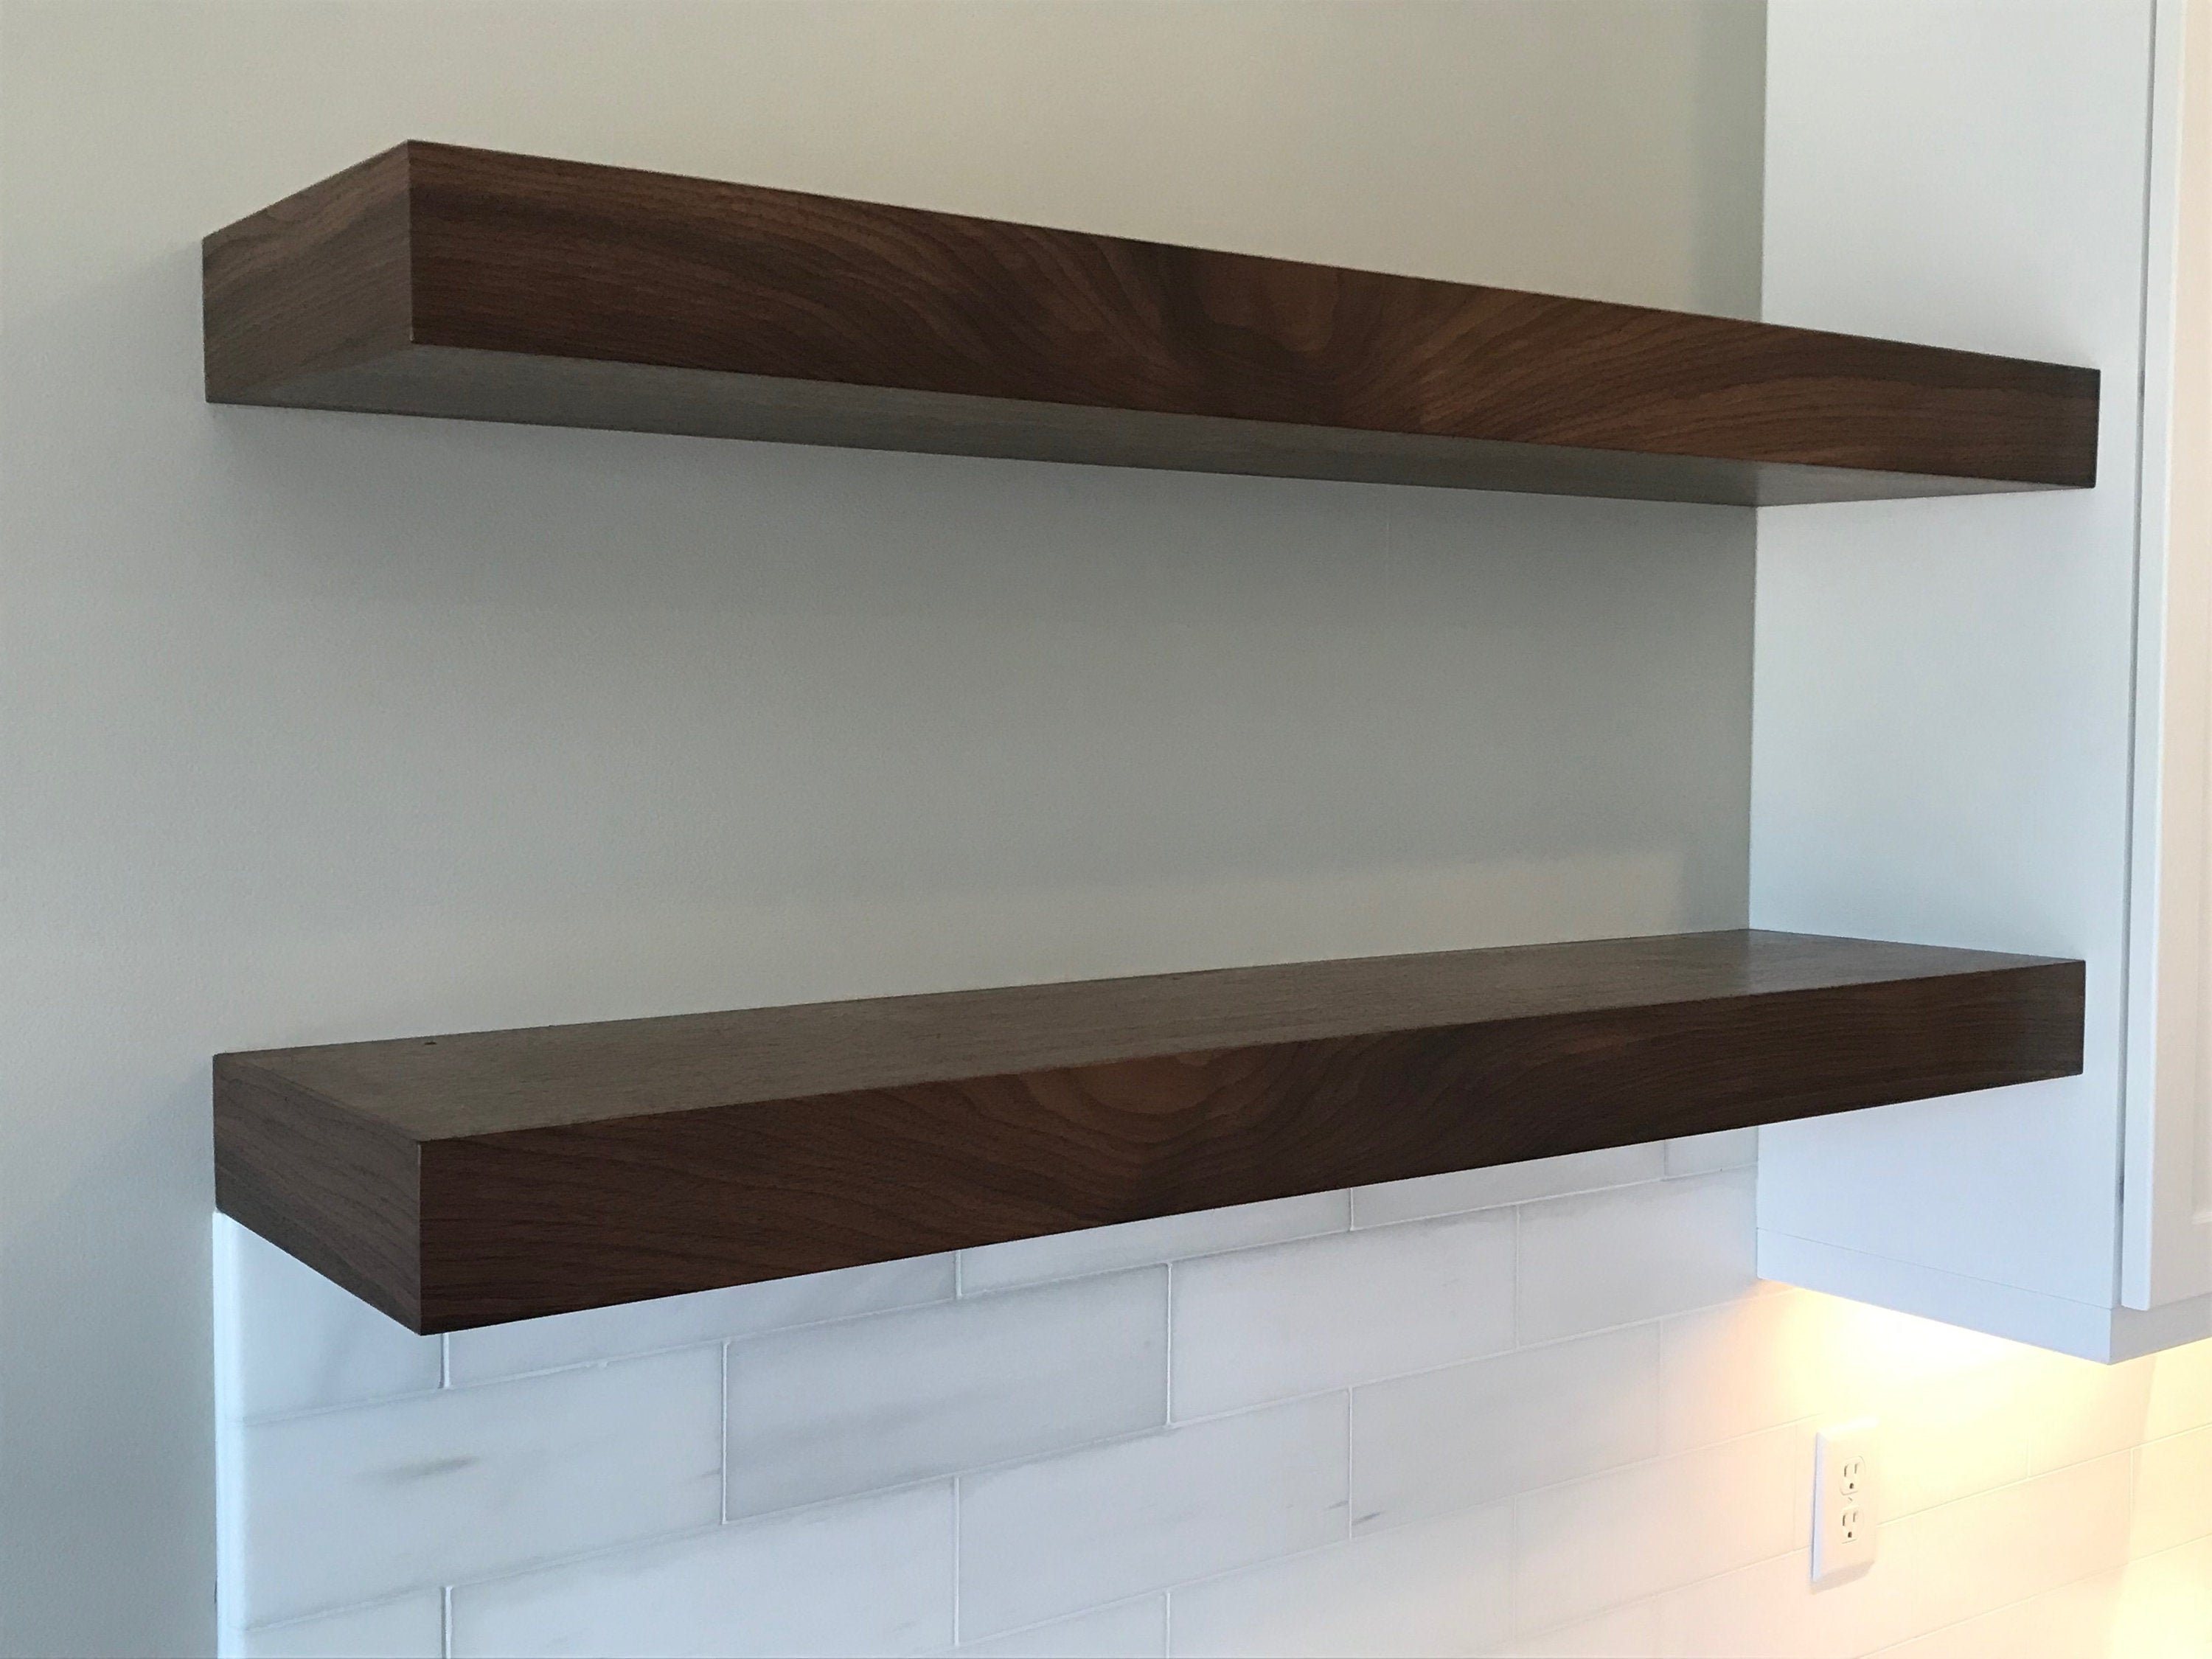 floating shelves walnut white oak mahogany etsy fullxfull box tall freestanding kitchen storage baskets wall shelf iron open shelving bathroom french homework desk narrow ledge